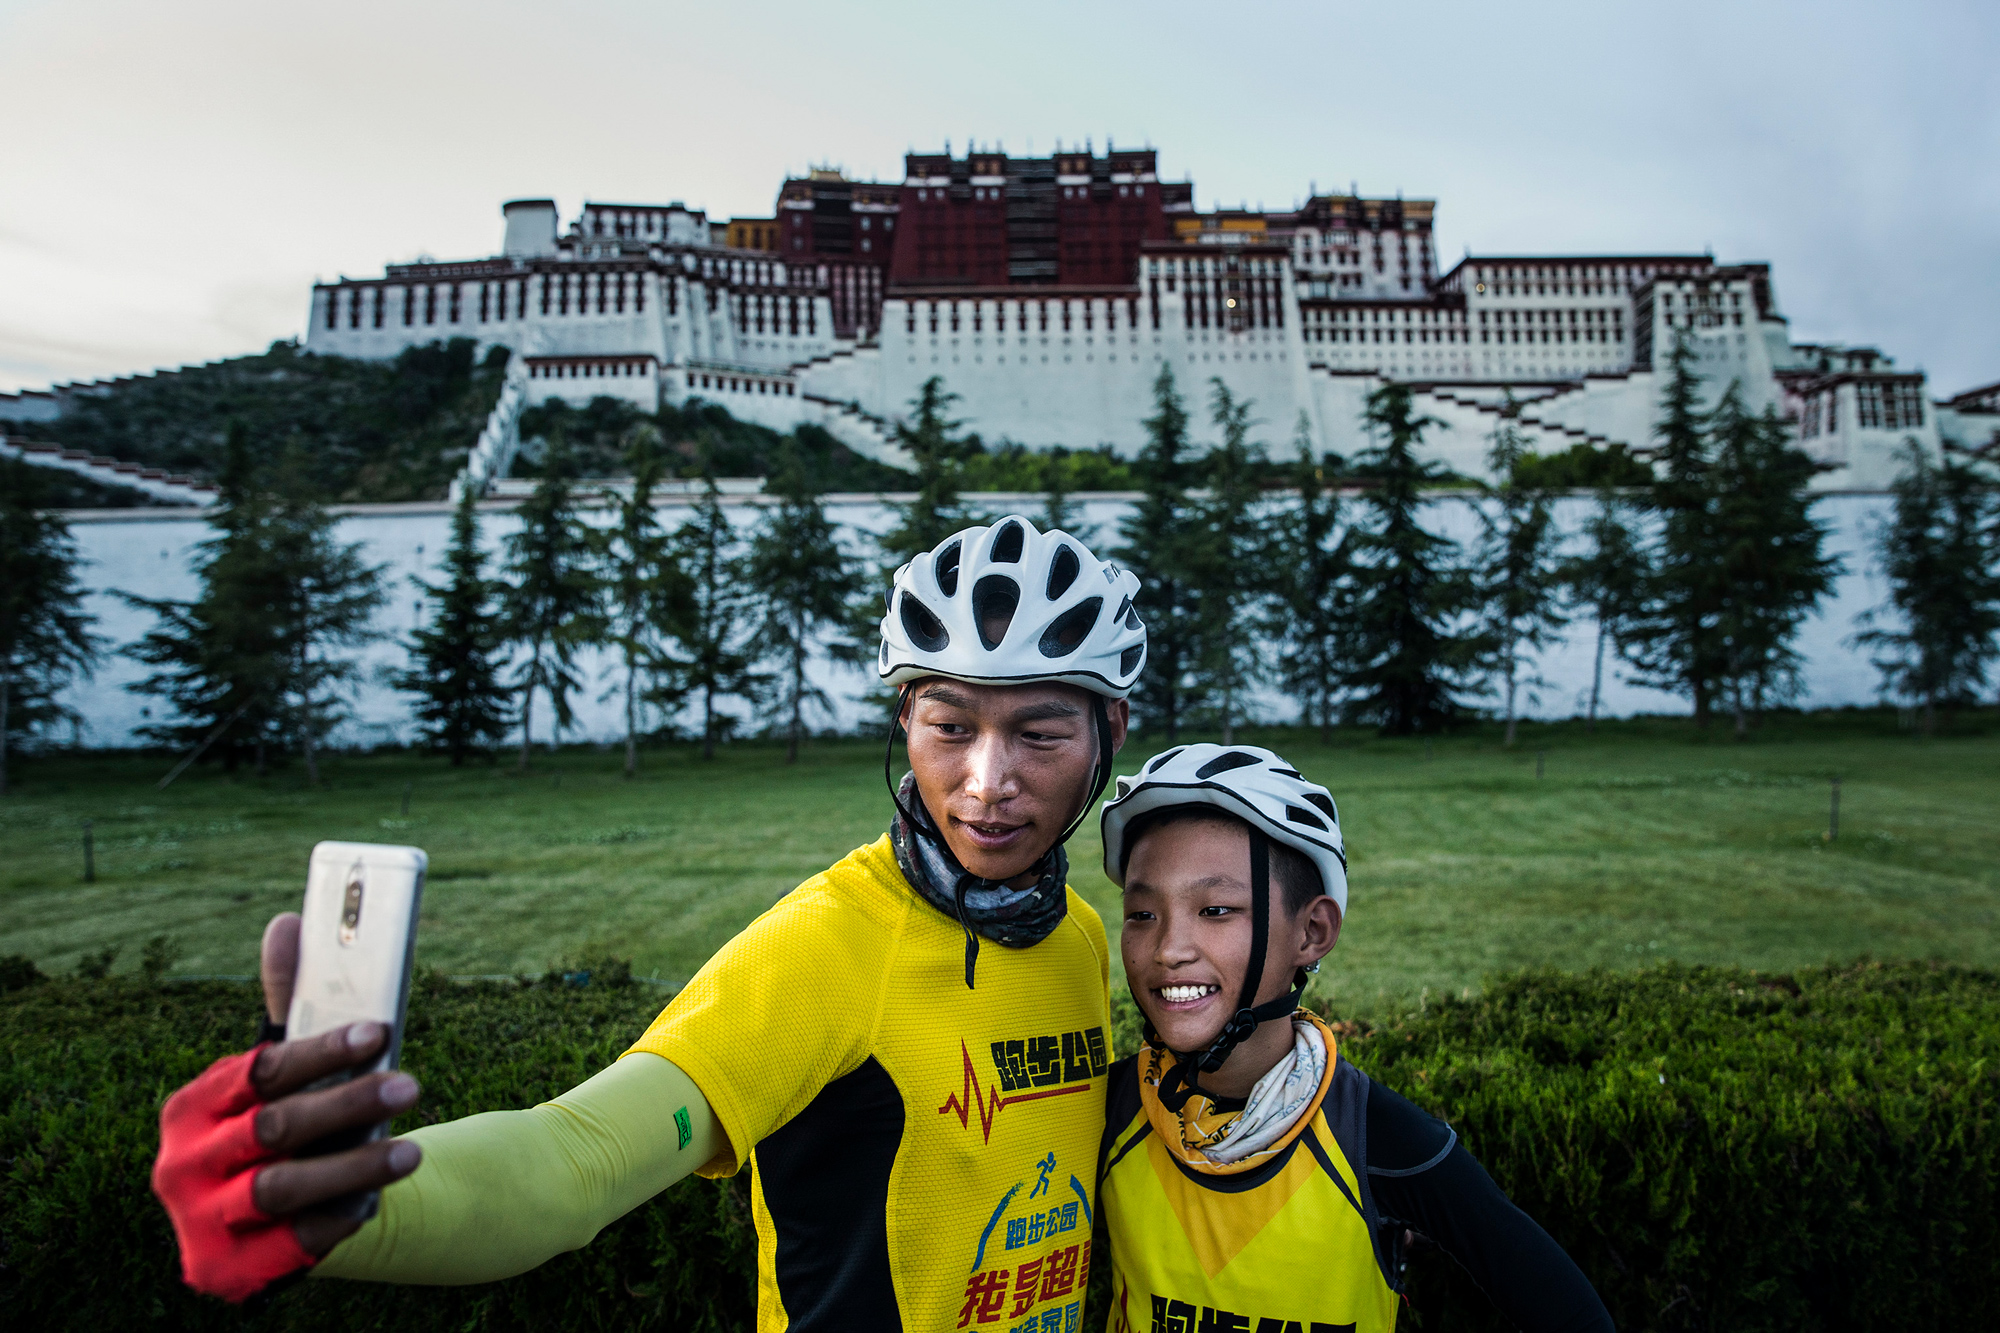 Chao and Runxi take a selfie in front of Potala Palace, the end-point of their 23-day bike trip, August 6.